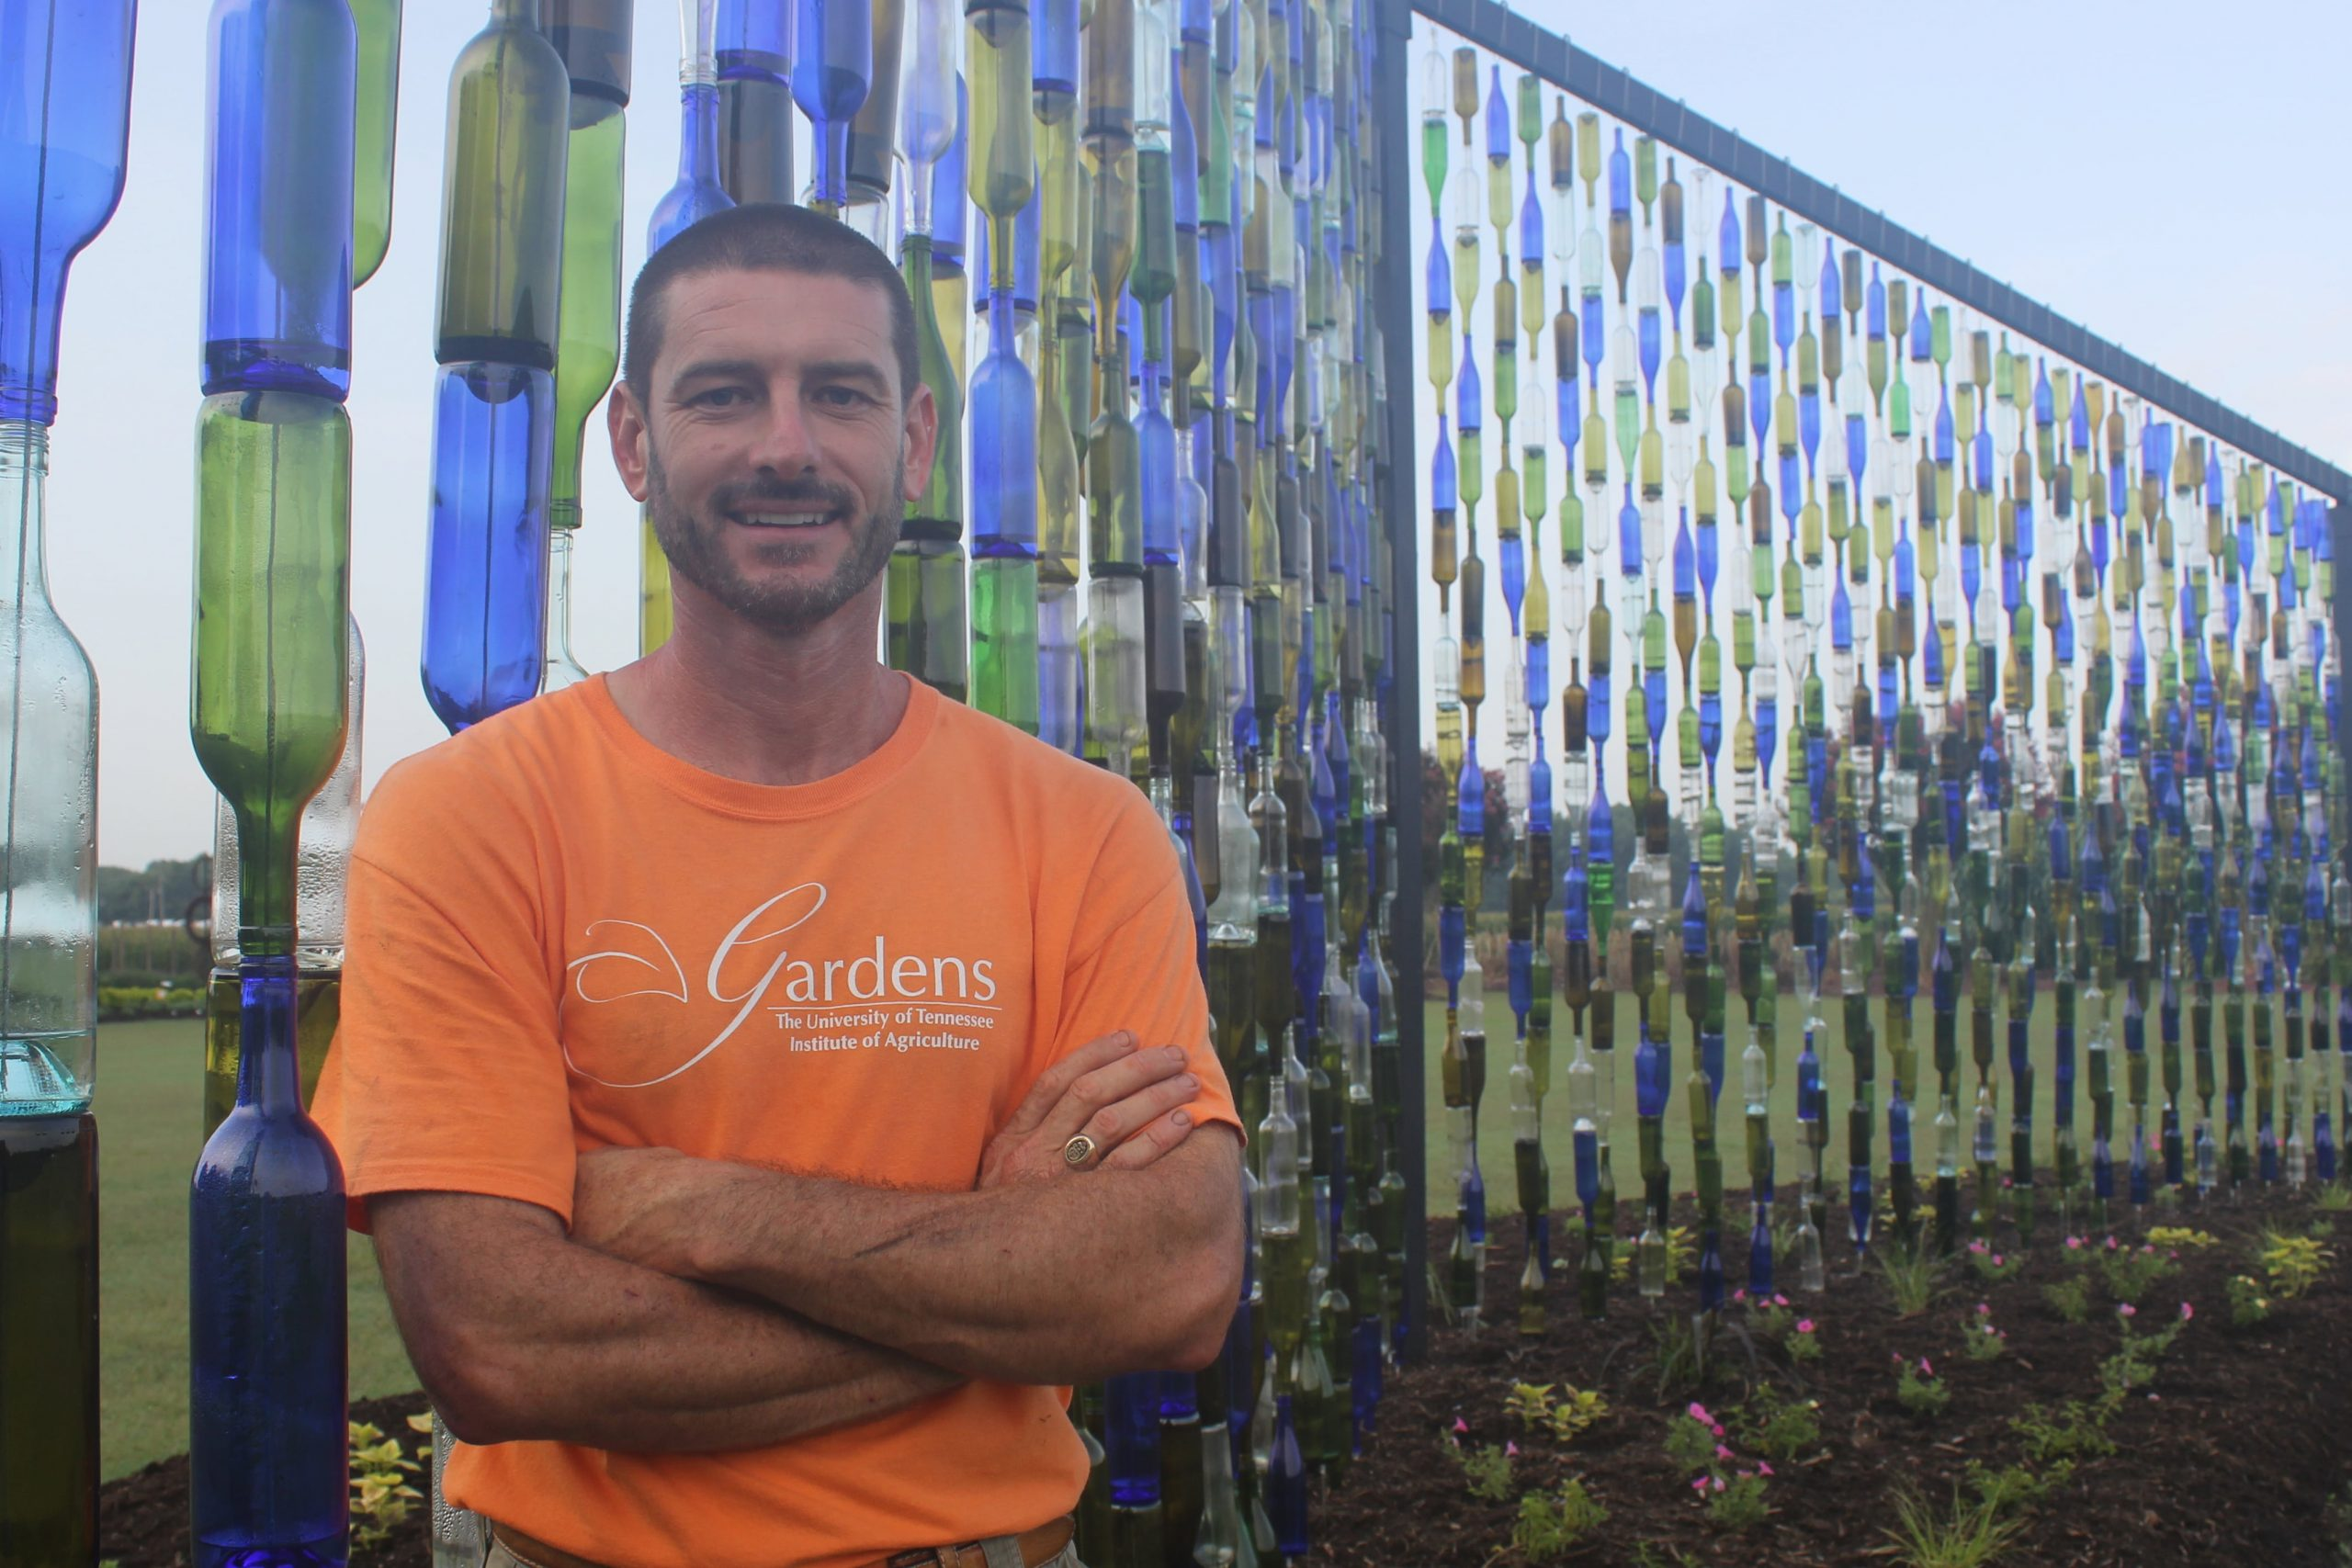 A Year in the Garden with Jason Reeves